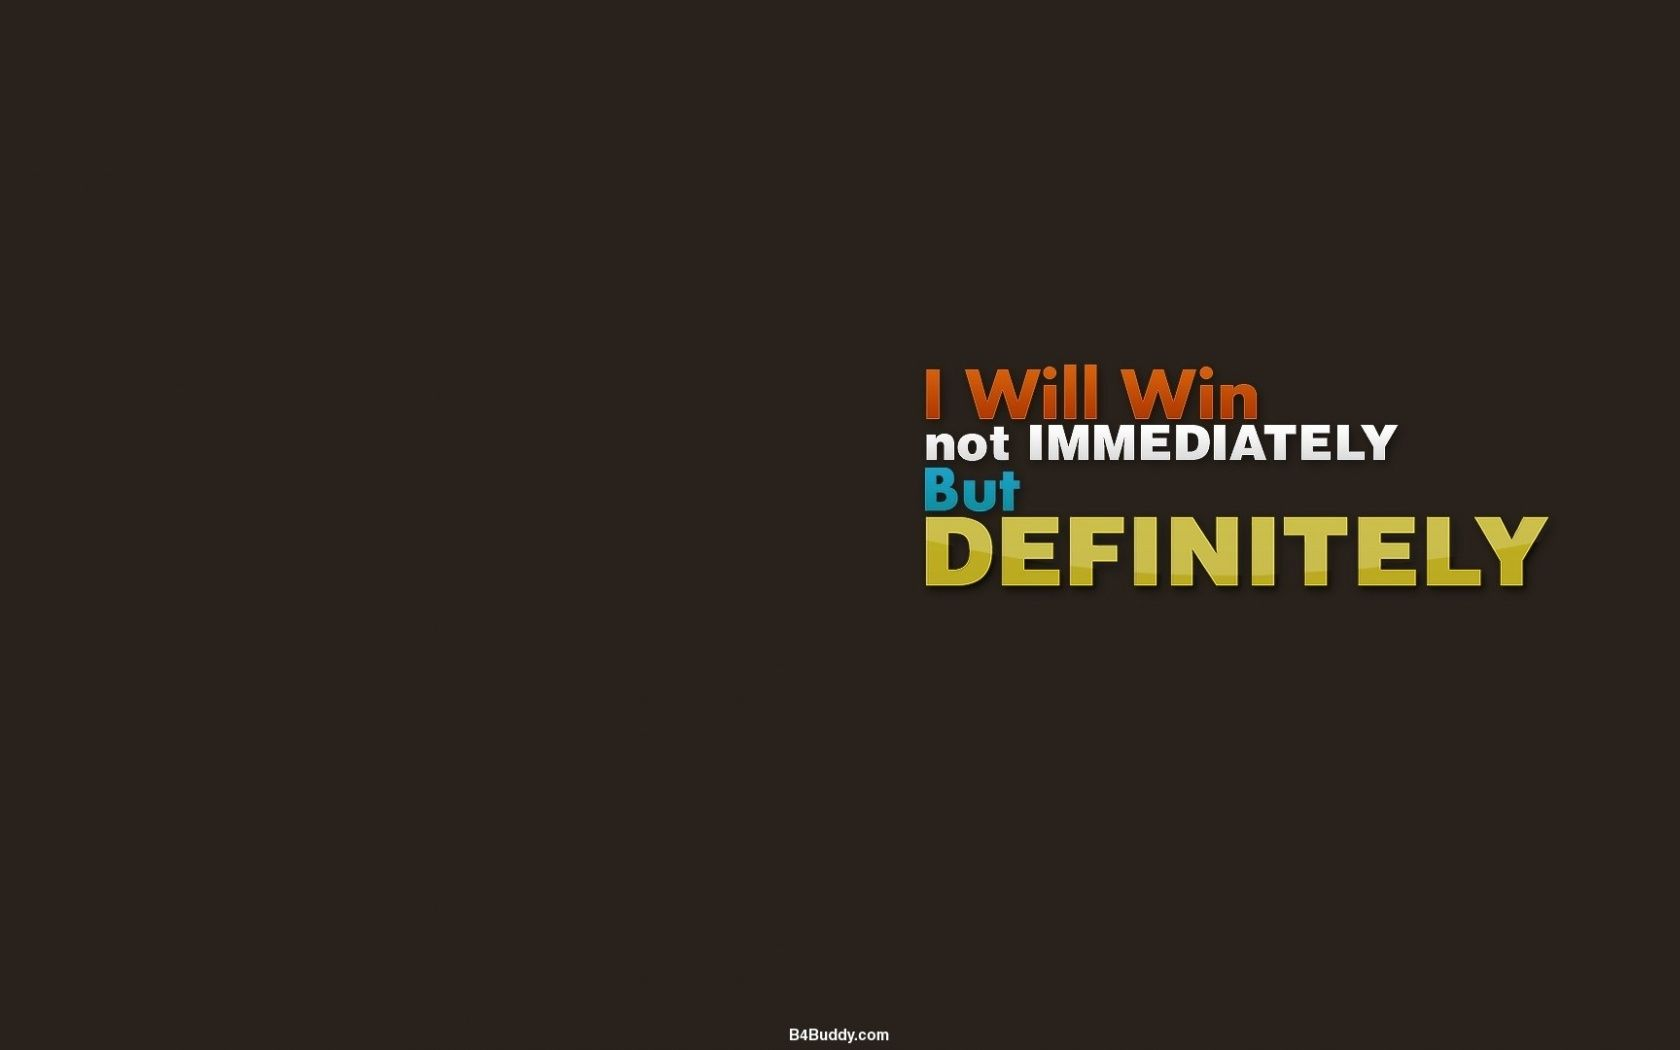 Awesome 35 Amazing Hd Motivational Wallpaper For Your Desktop Best Motivational Quotes Motivational Quotes Inspirational Quotes Wallpapers